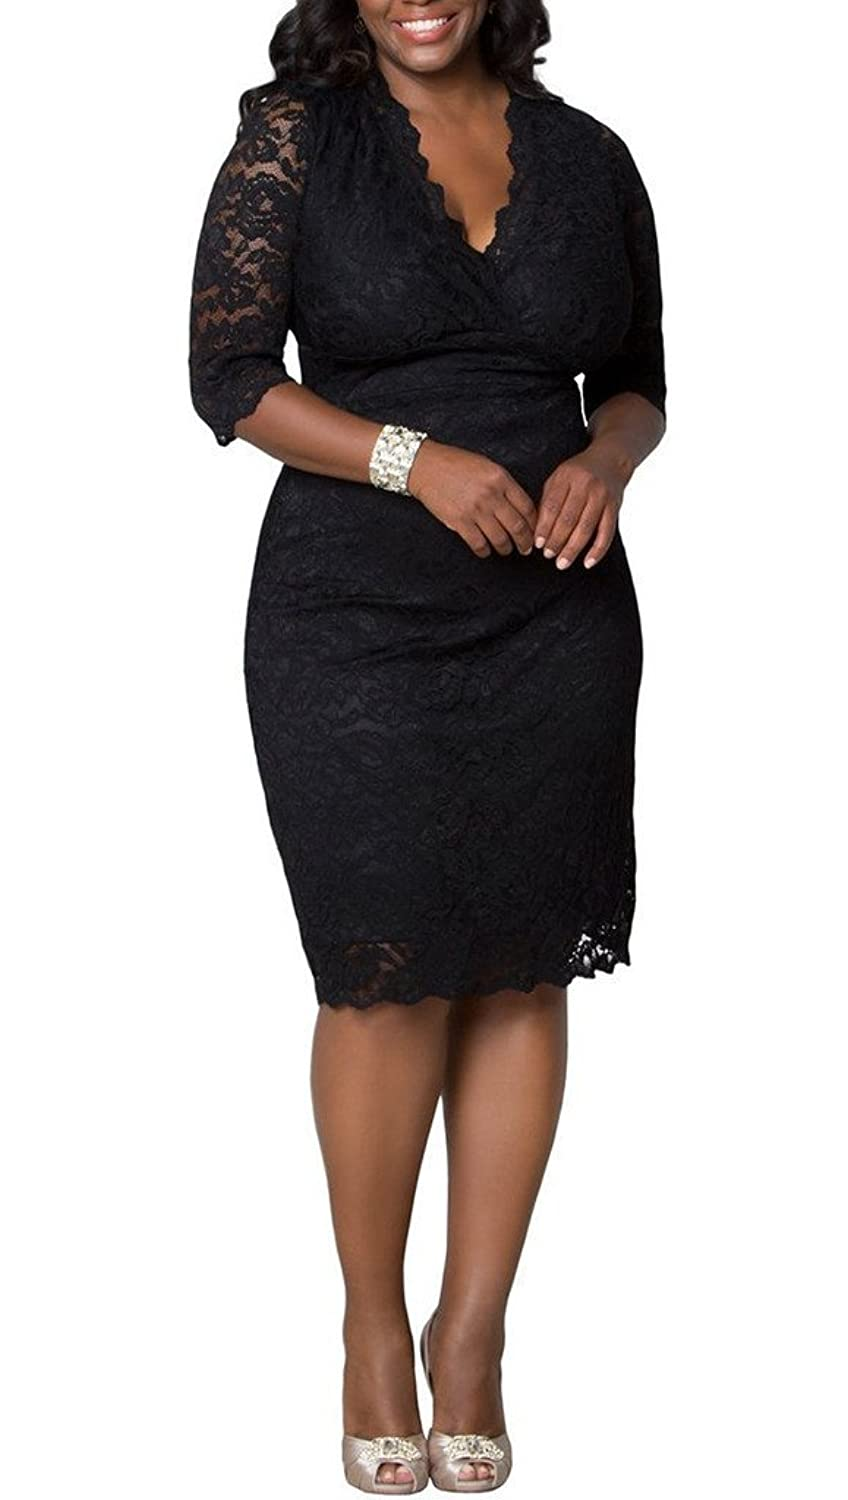 dressvip Women Plus Size Black Lace Cocktail Wedding Mother of Bride Dress